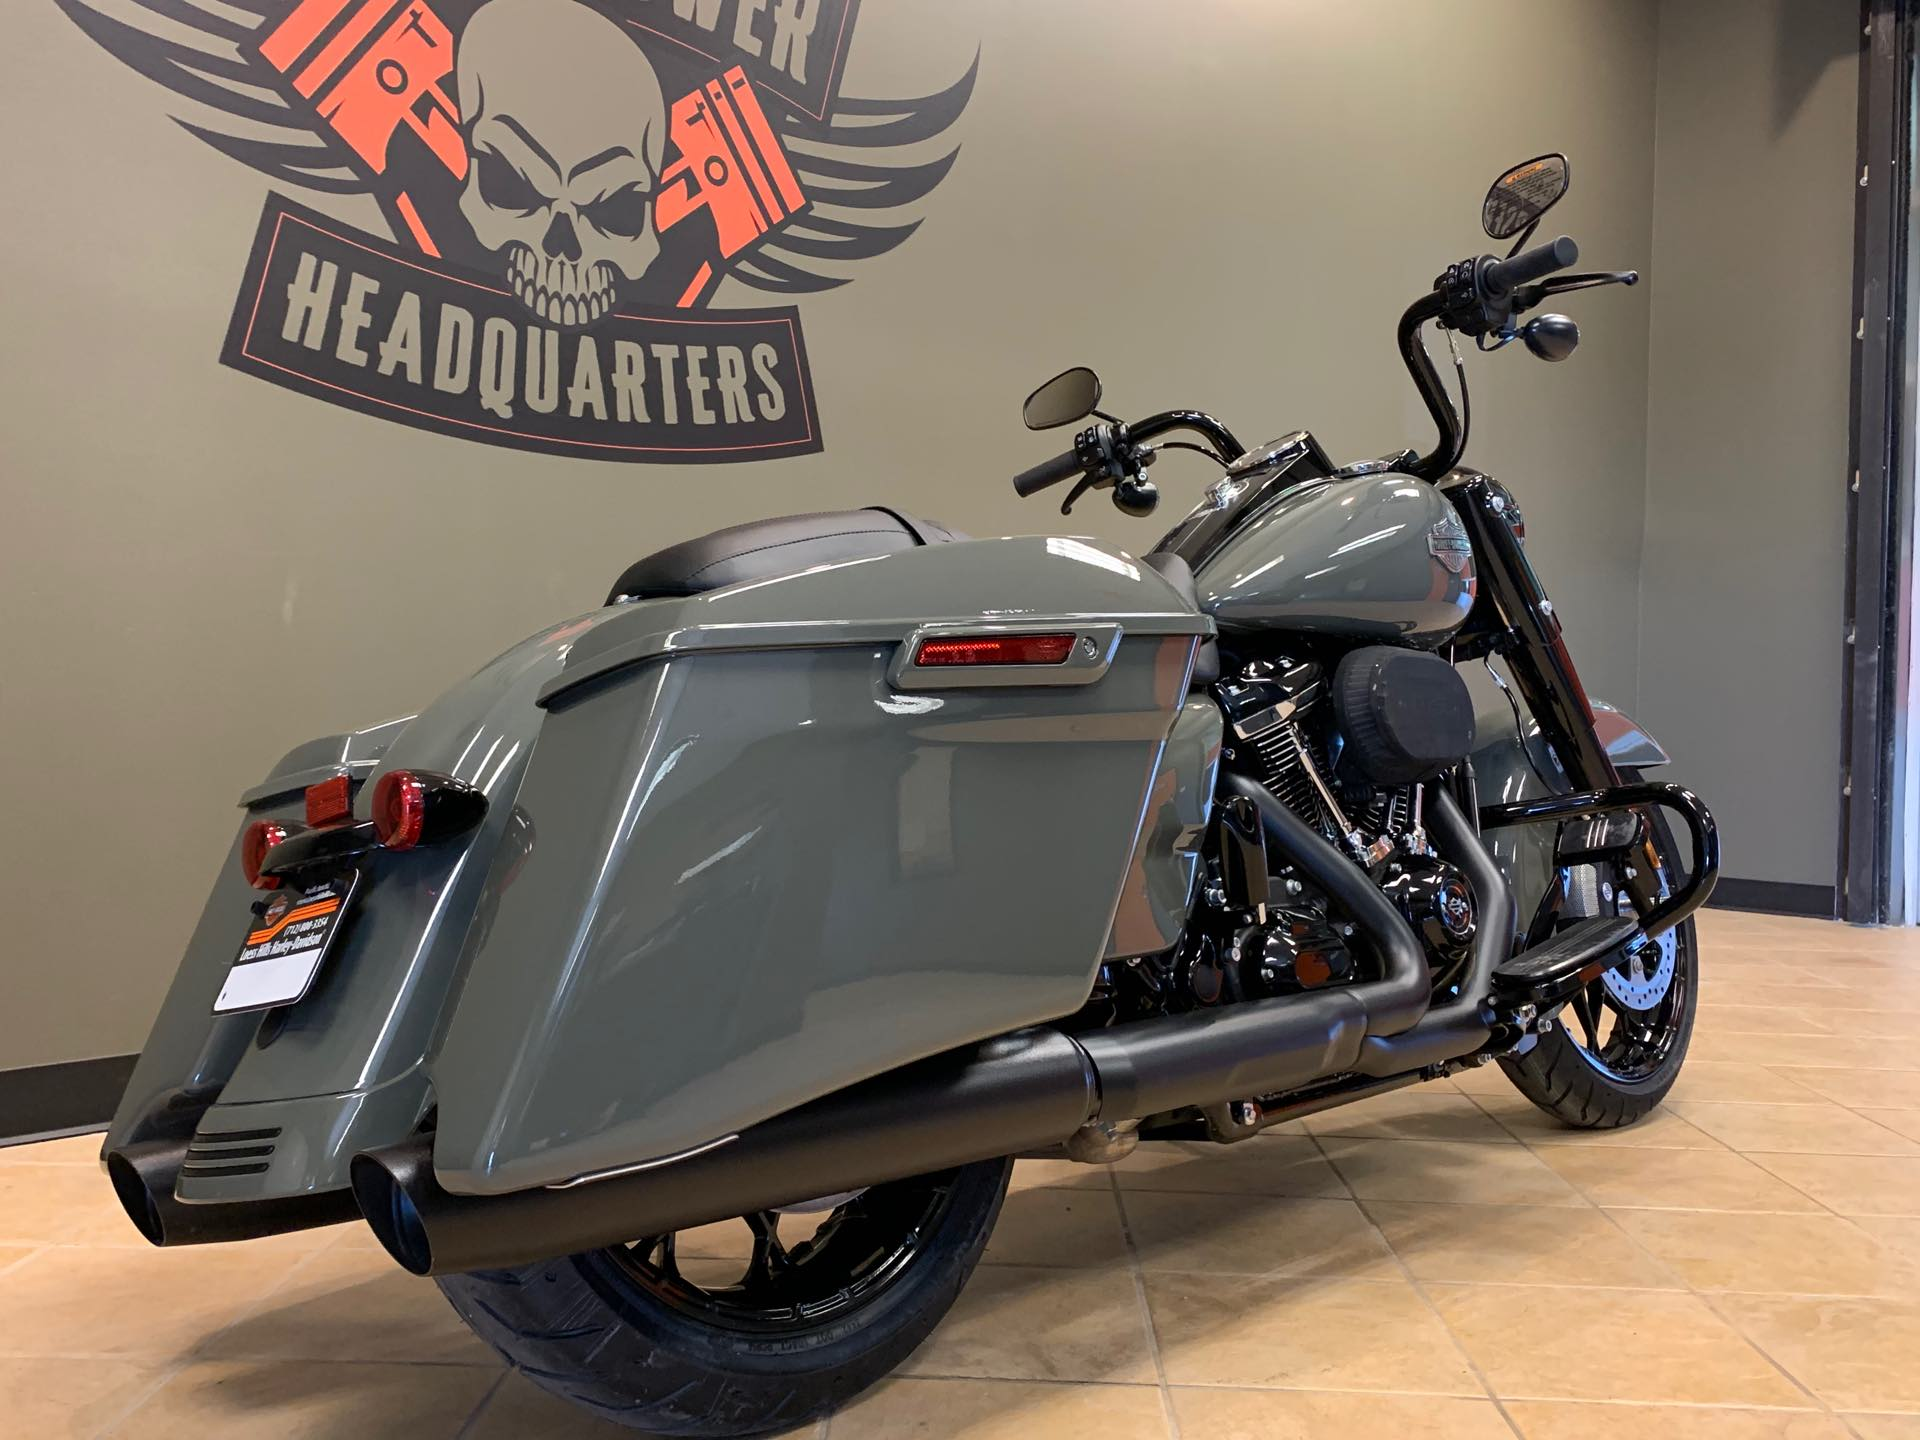 2021 Harley-Davidson Touring FLHRXS Road King Special at Loess Hills Harley-Davidson